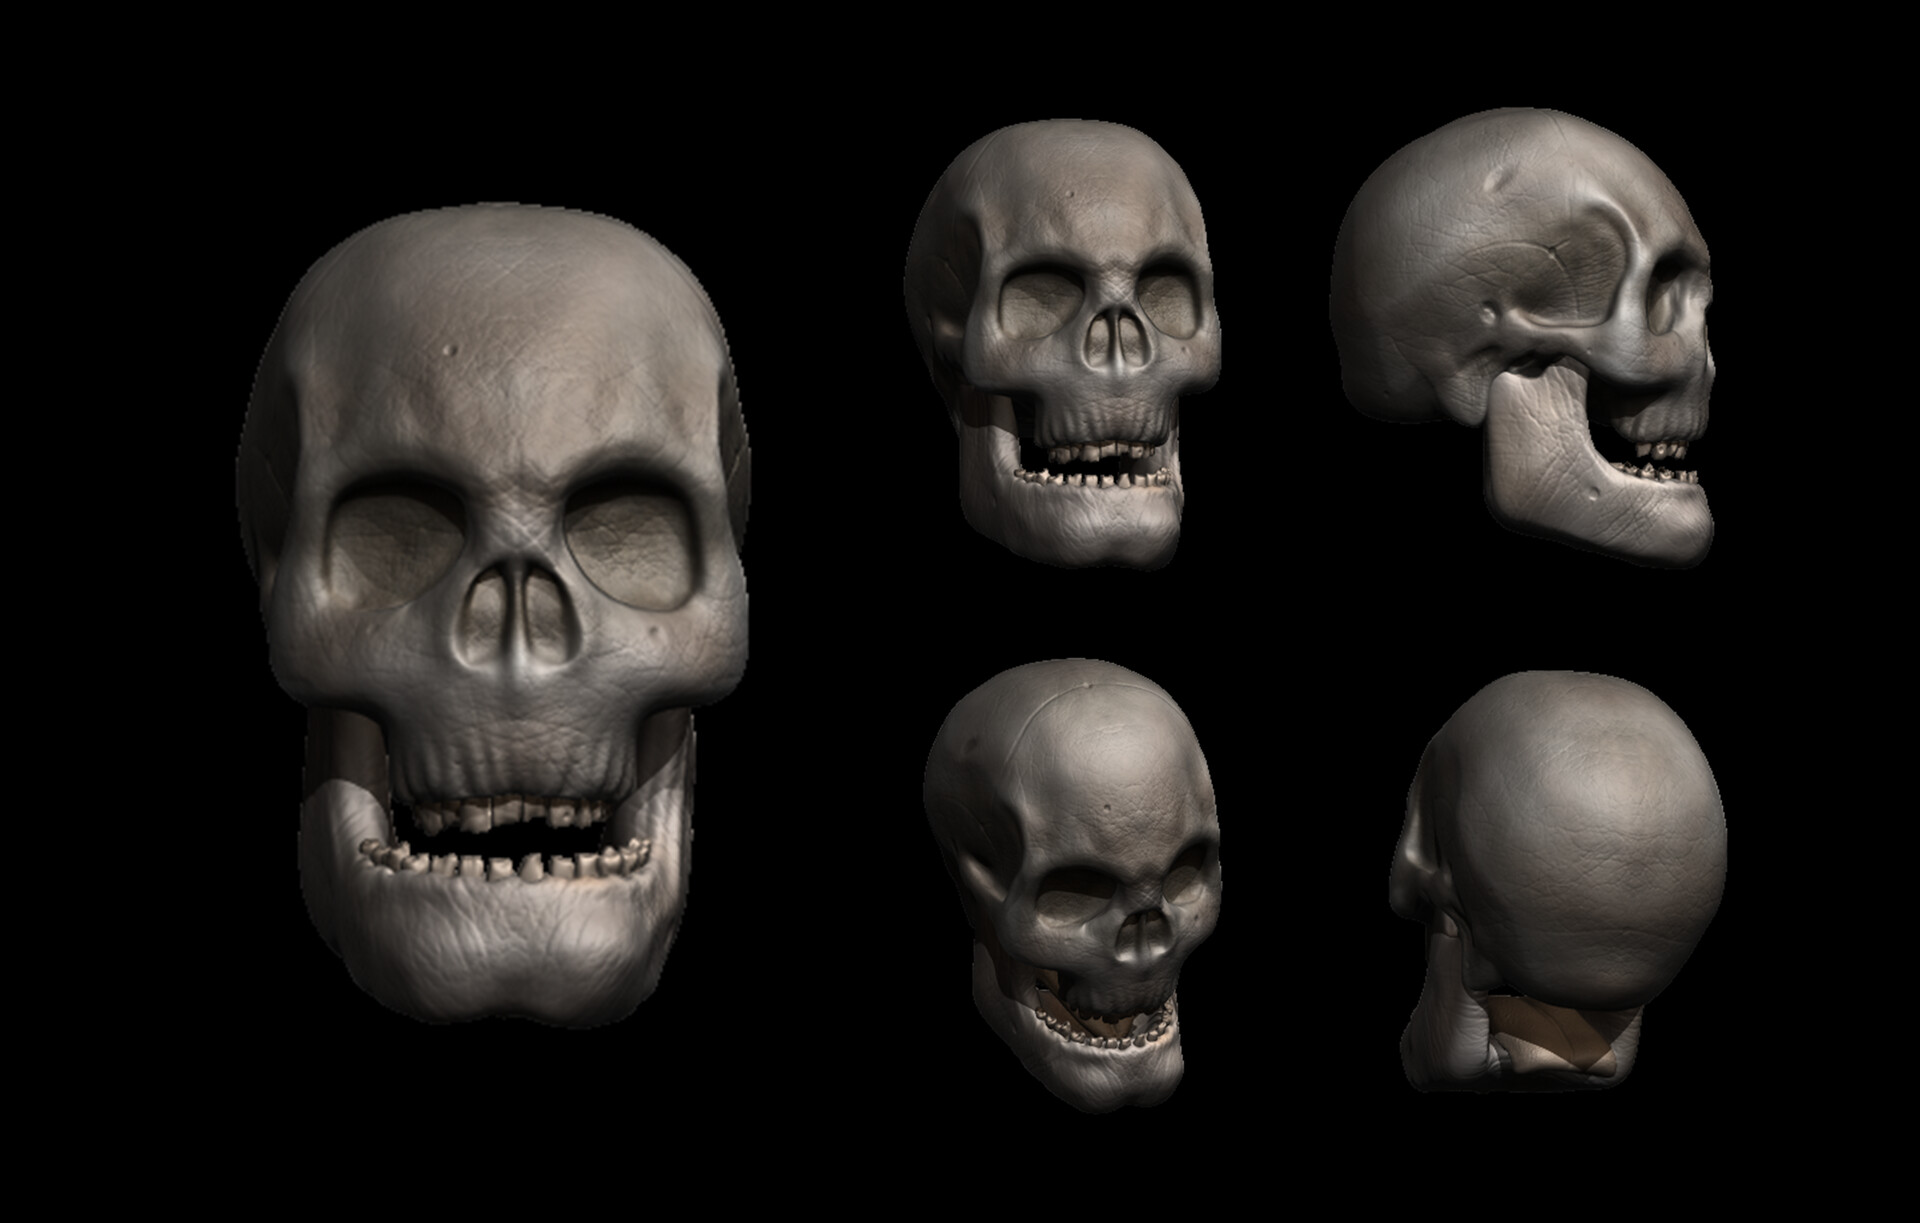 Realistic human skull with textures